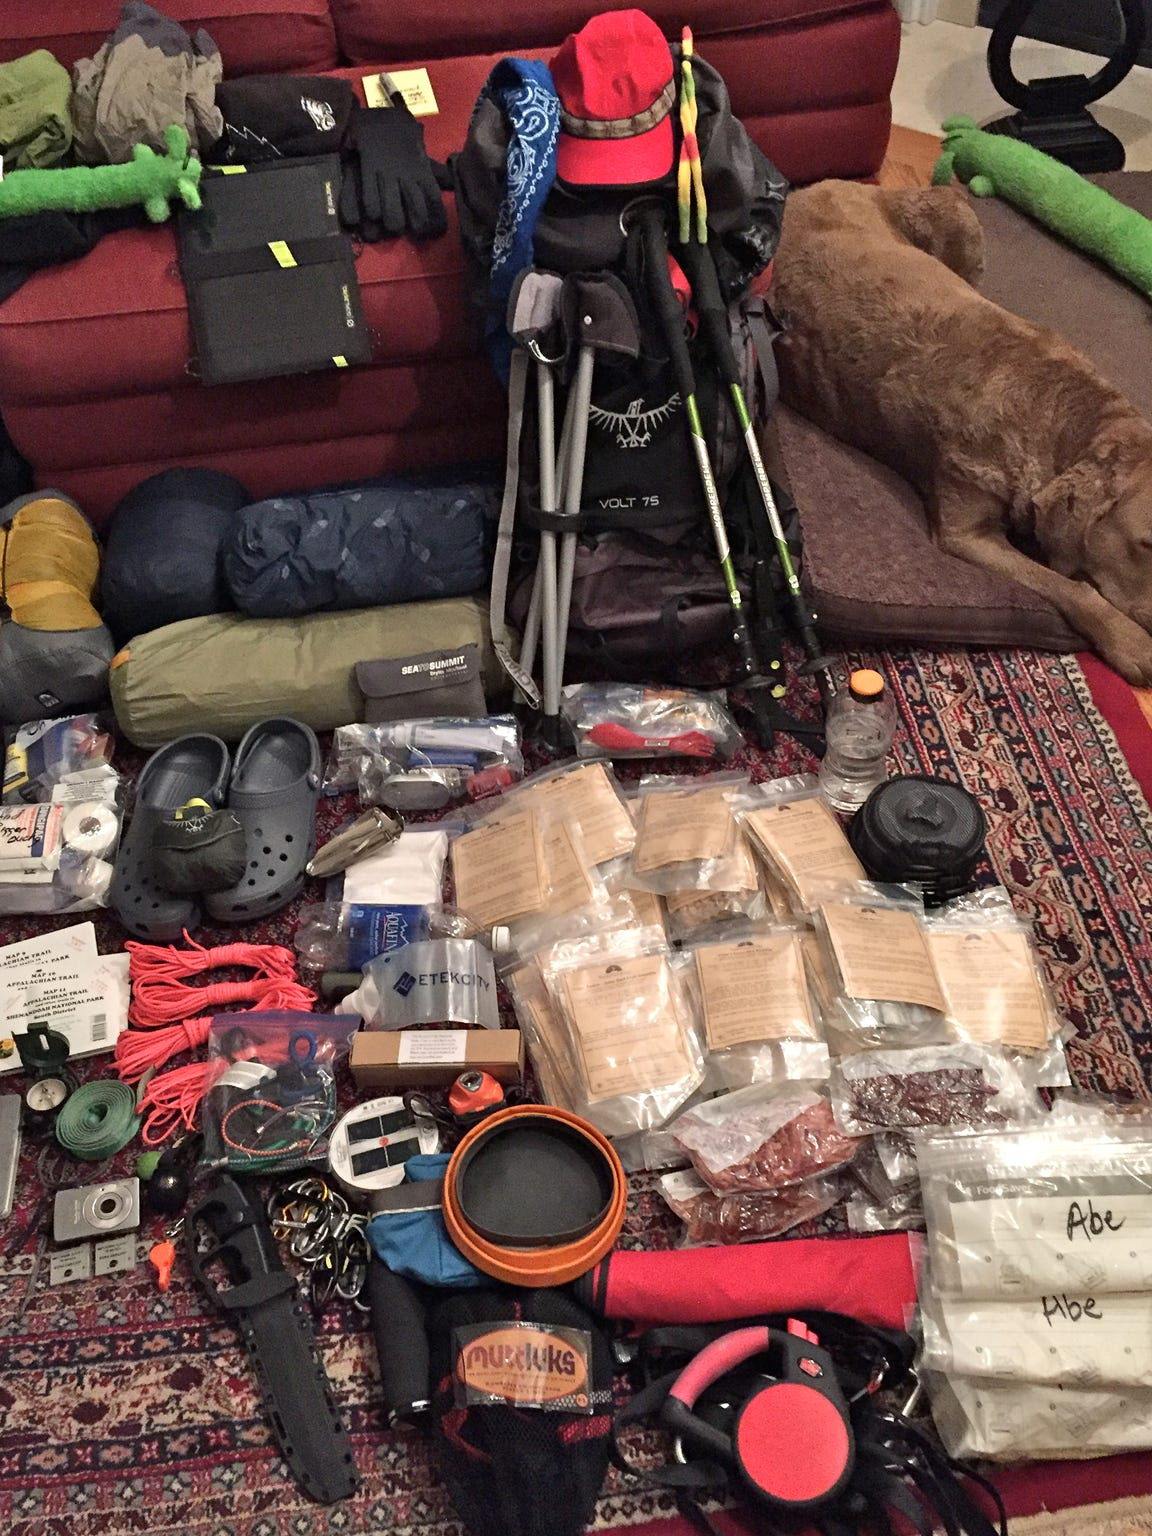 David Paulk unpacks his backpack to organize and eliminate some items to reduce weight for his hiking trip.